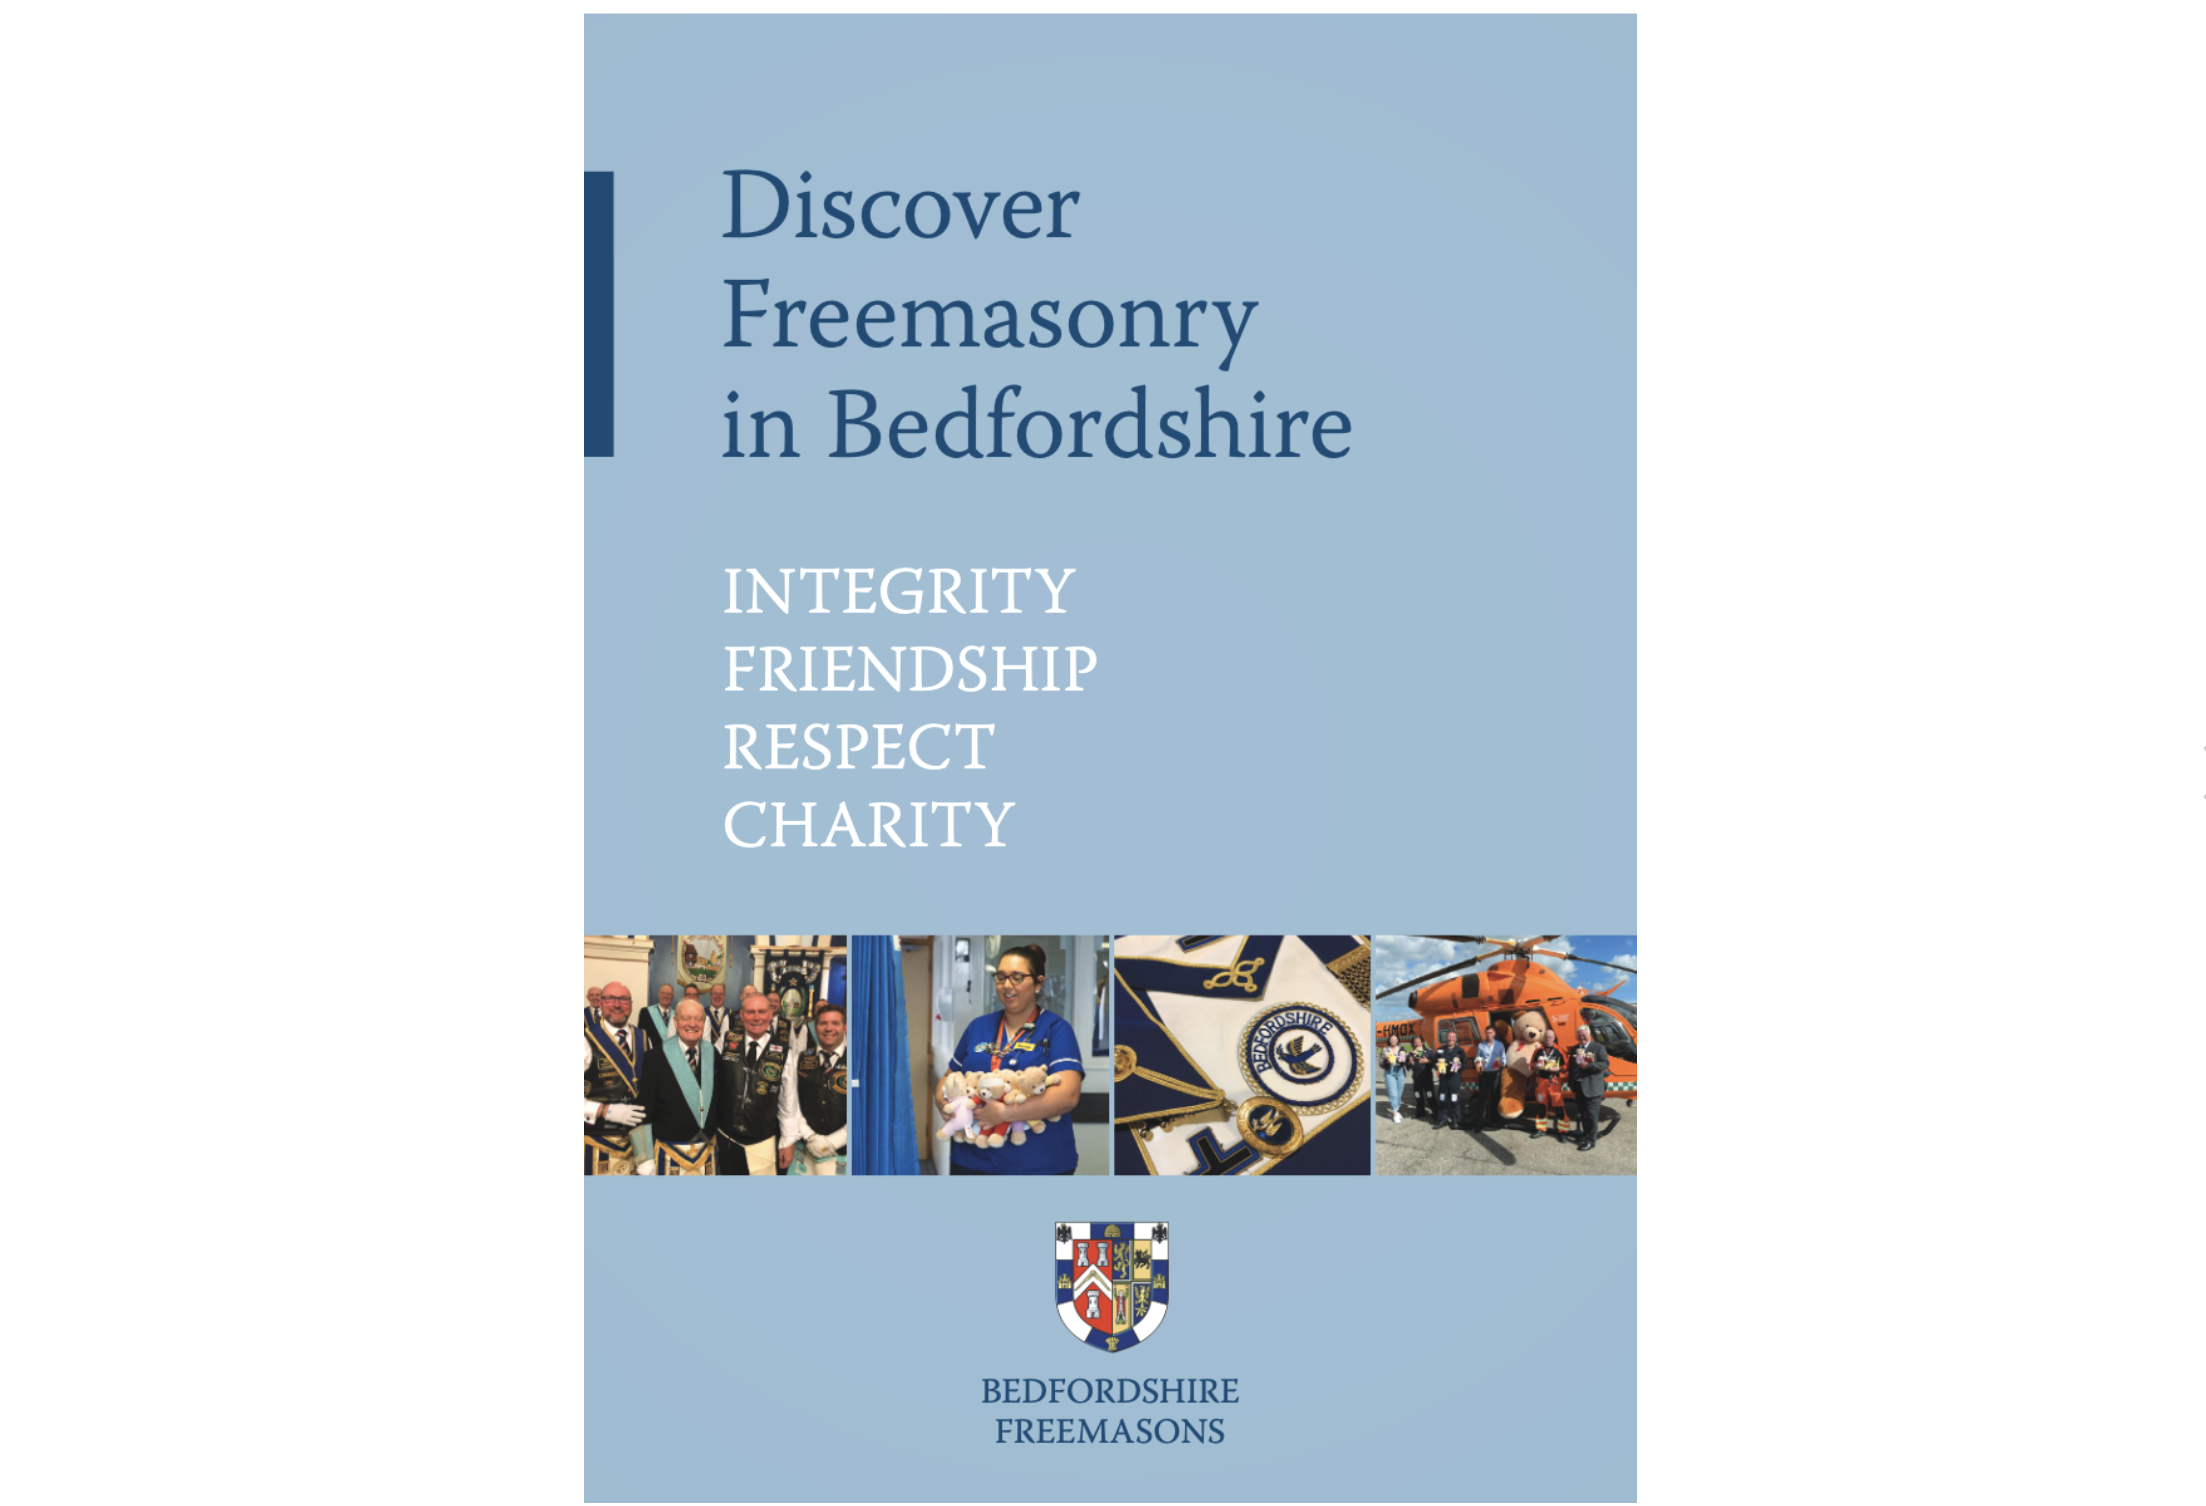 Discover Freemasonry in Bedfordshire